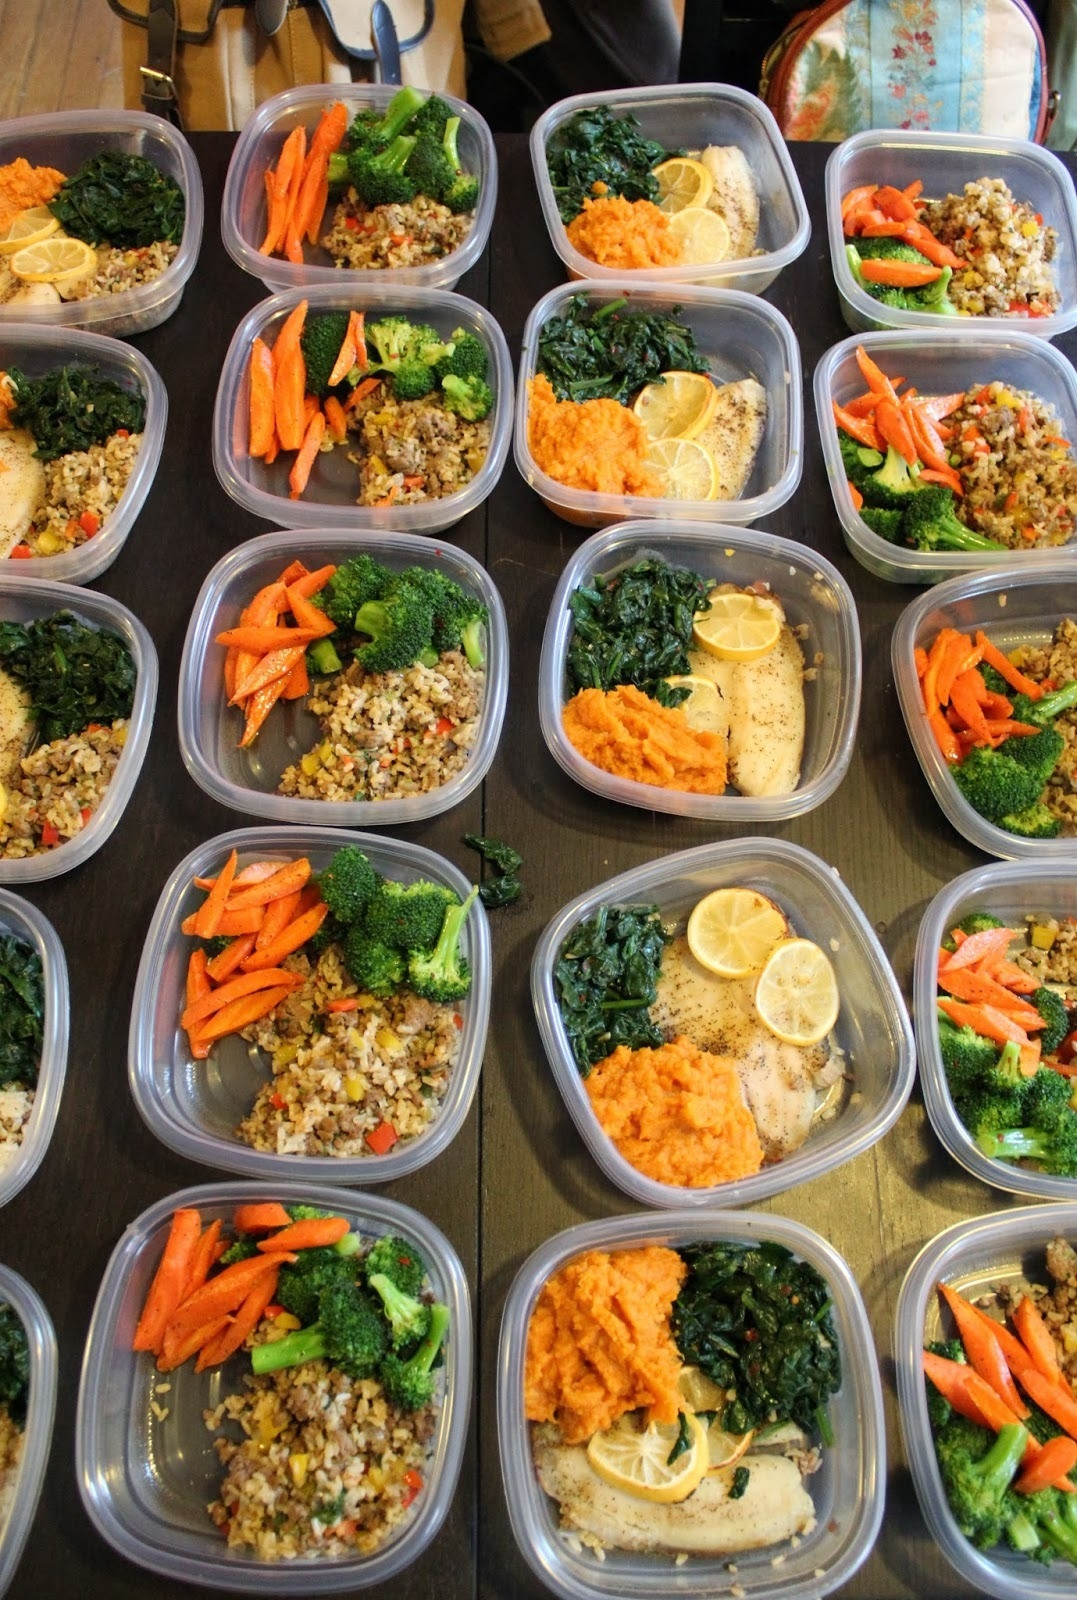 Healthy Meal Prep Lunches  Healthy Meal Prep Ideas For The WeekWritings and Papers